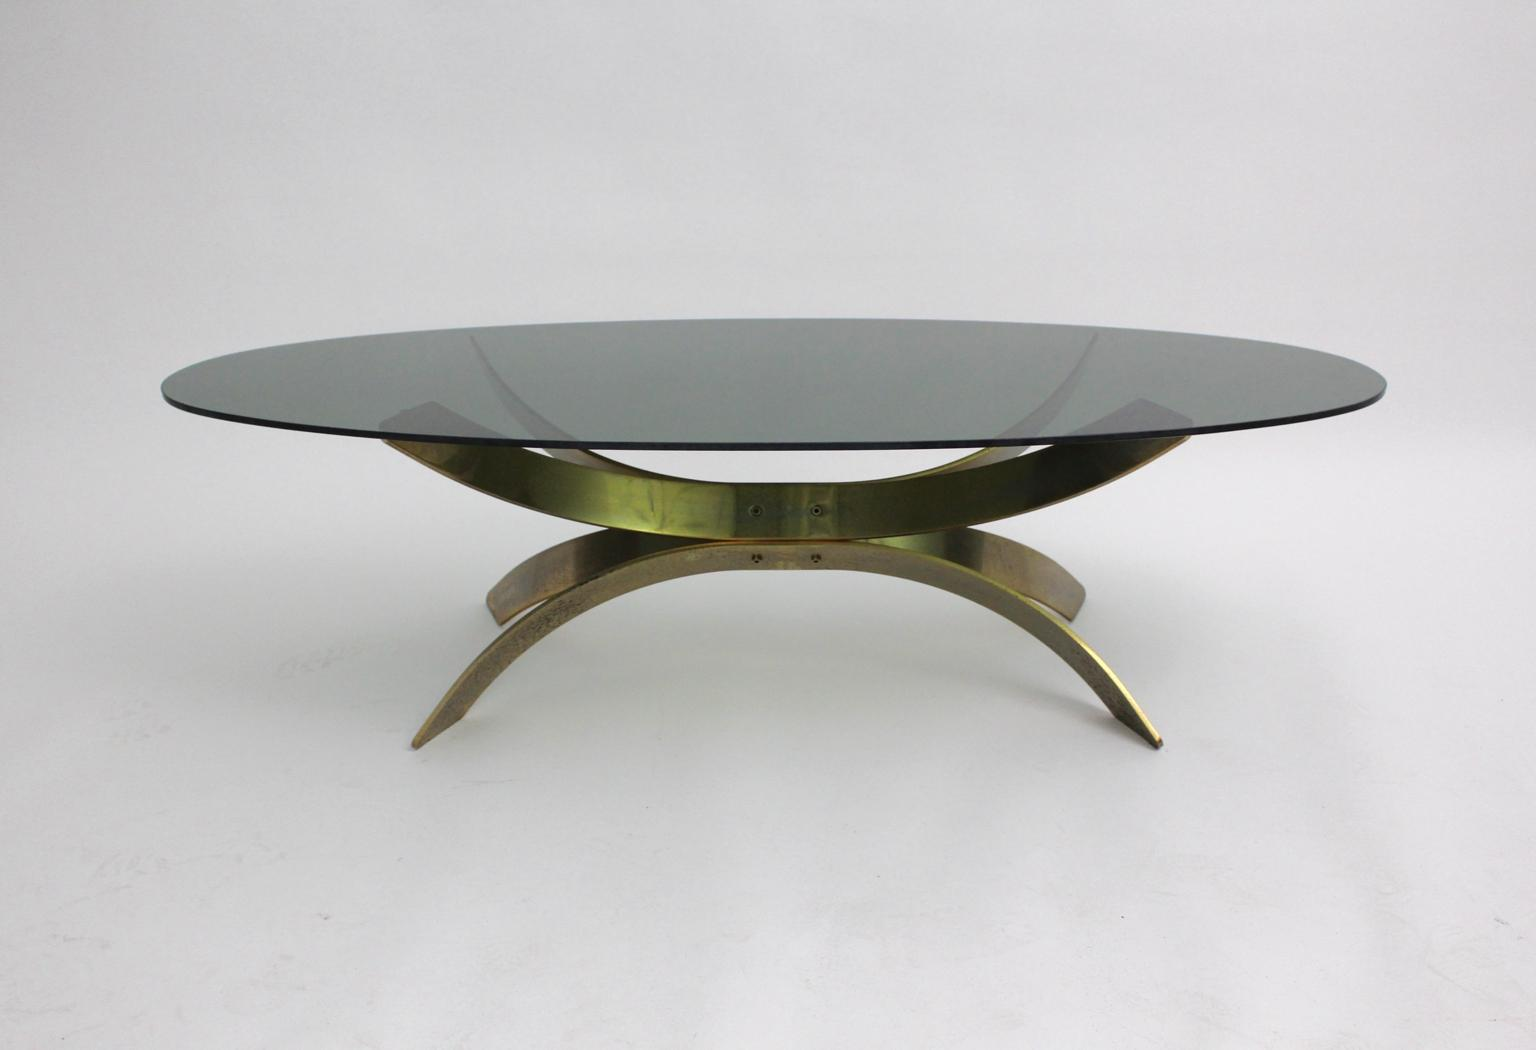 brass coffee table circa from nobarock on rubylux